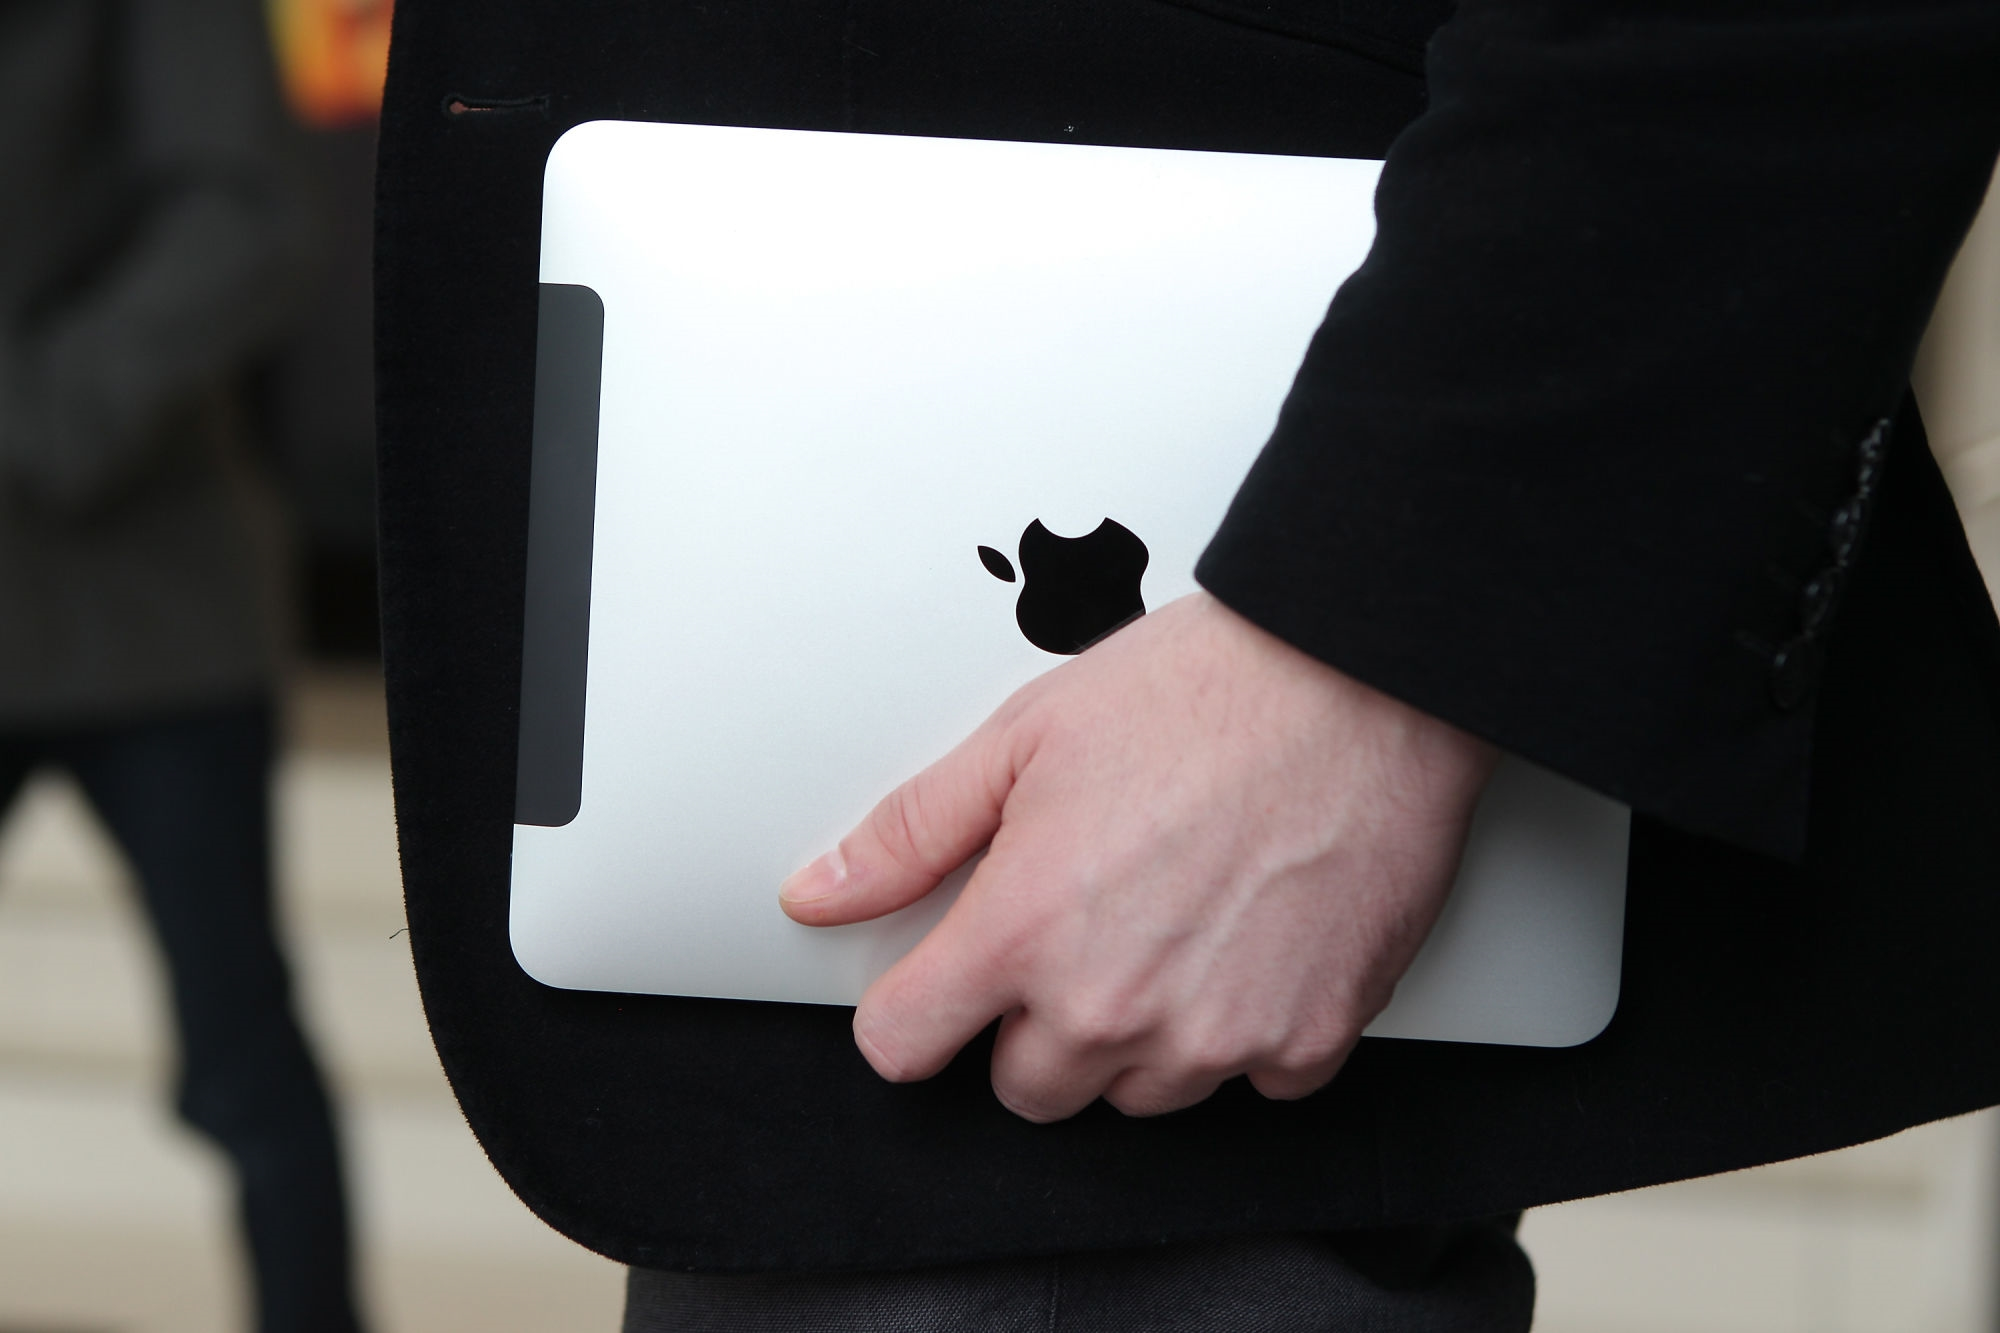 This week in tech history: Apple releases the first iPad | DeviceDaily.com